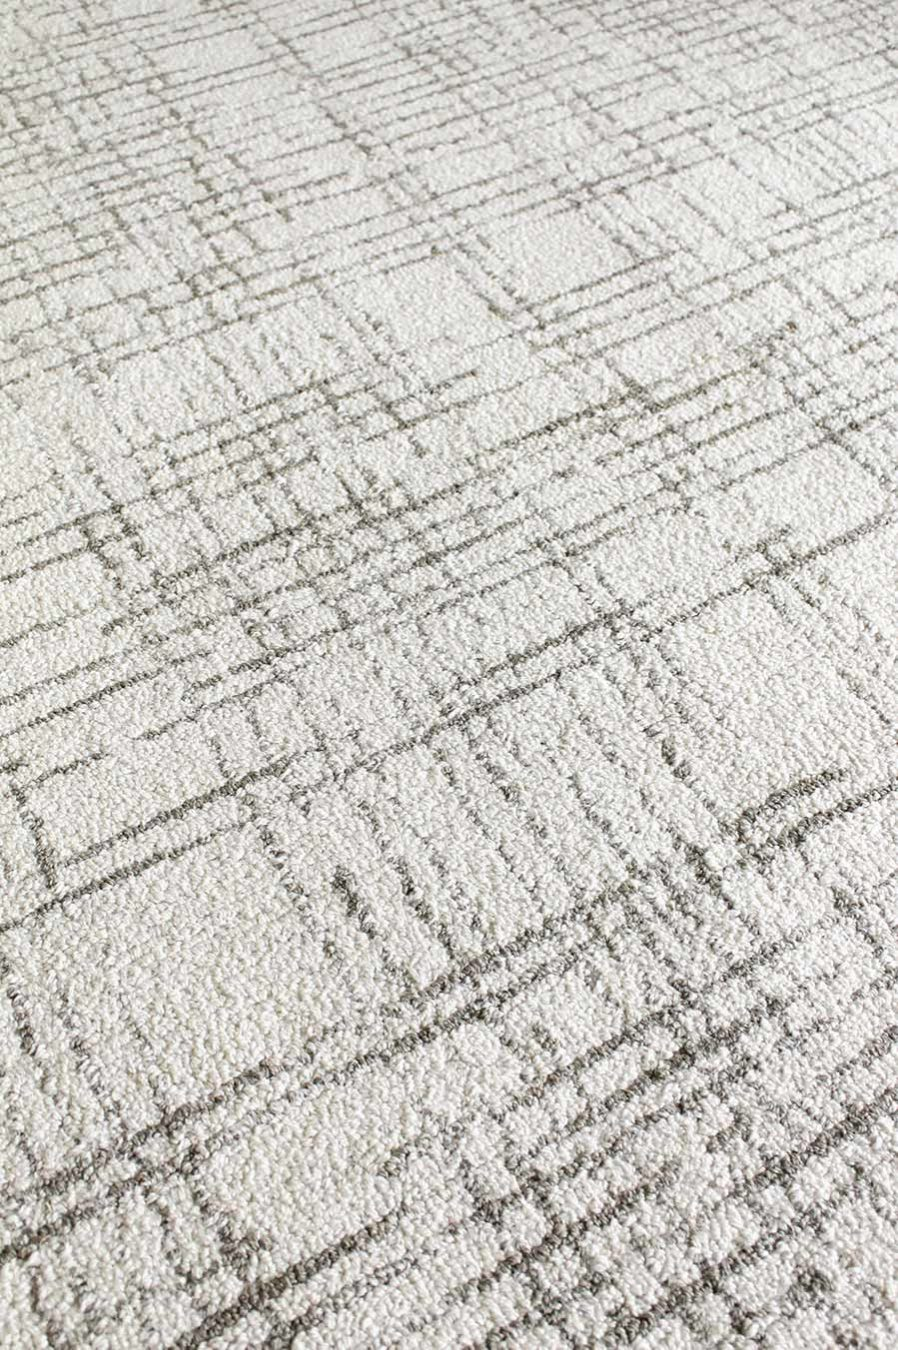 Detailed image of textured Burlap rug in white colour